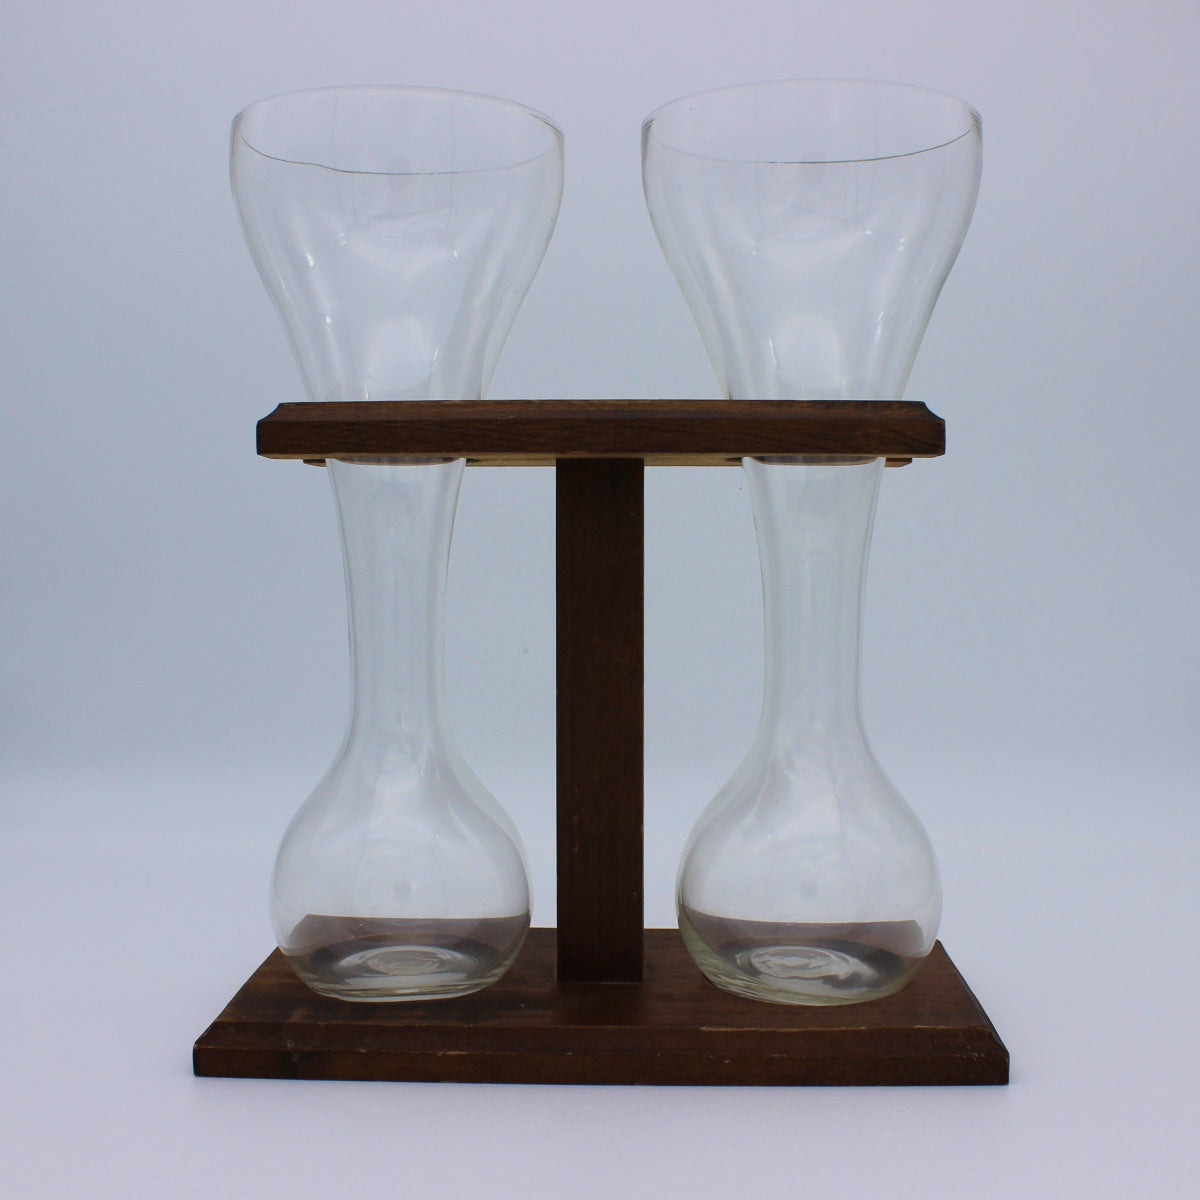 Quarter Yard Beer Set with Wood Stand (VINTAGE)